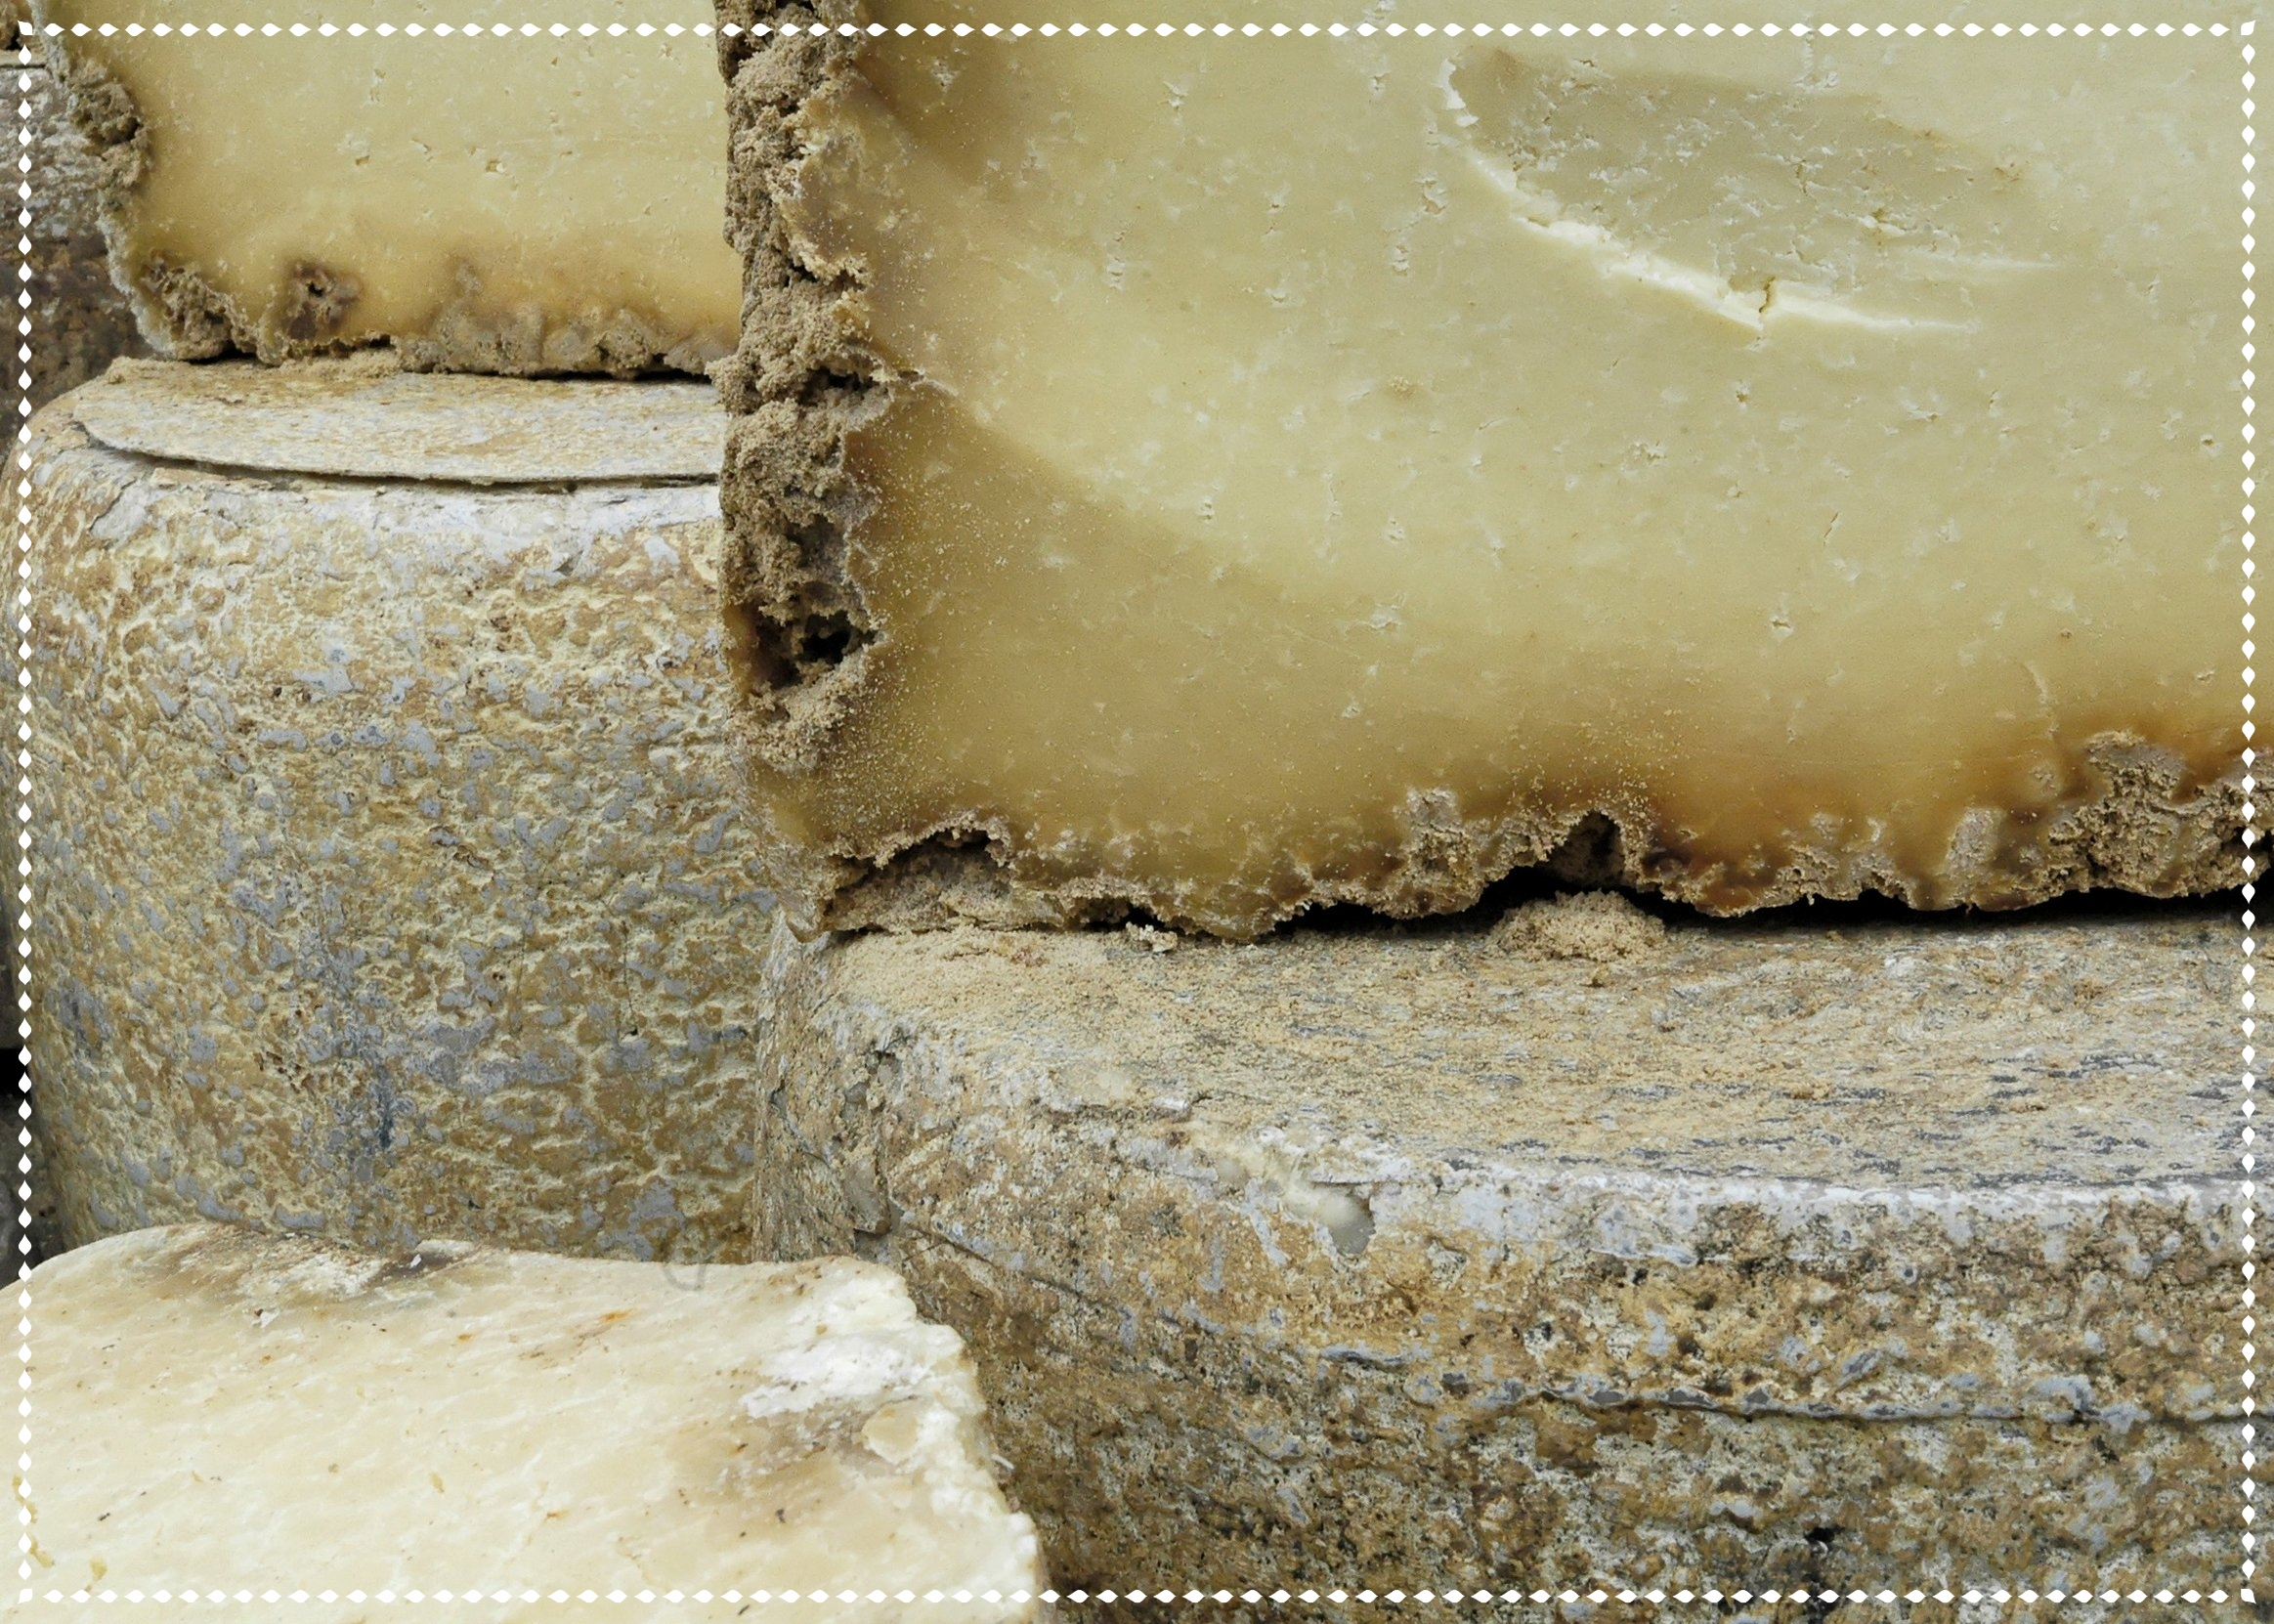 AdobeStock_7353537 cheese rind.jpg